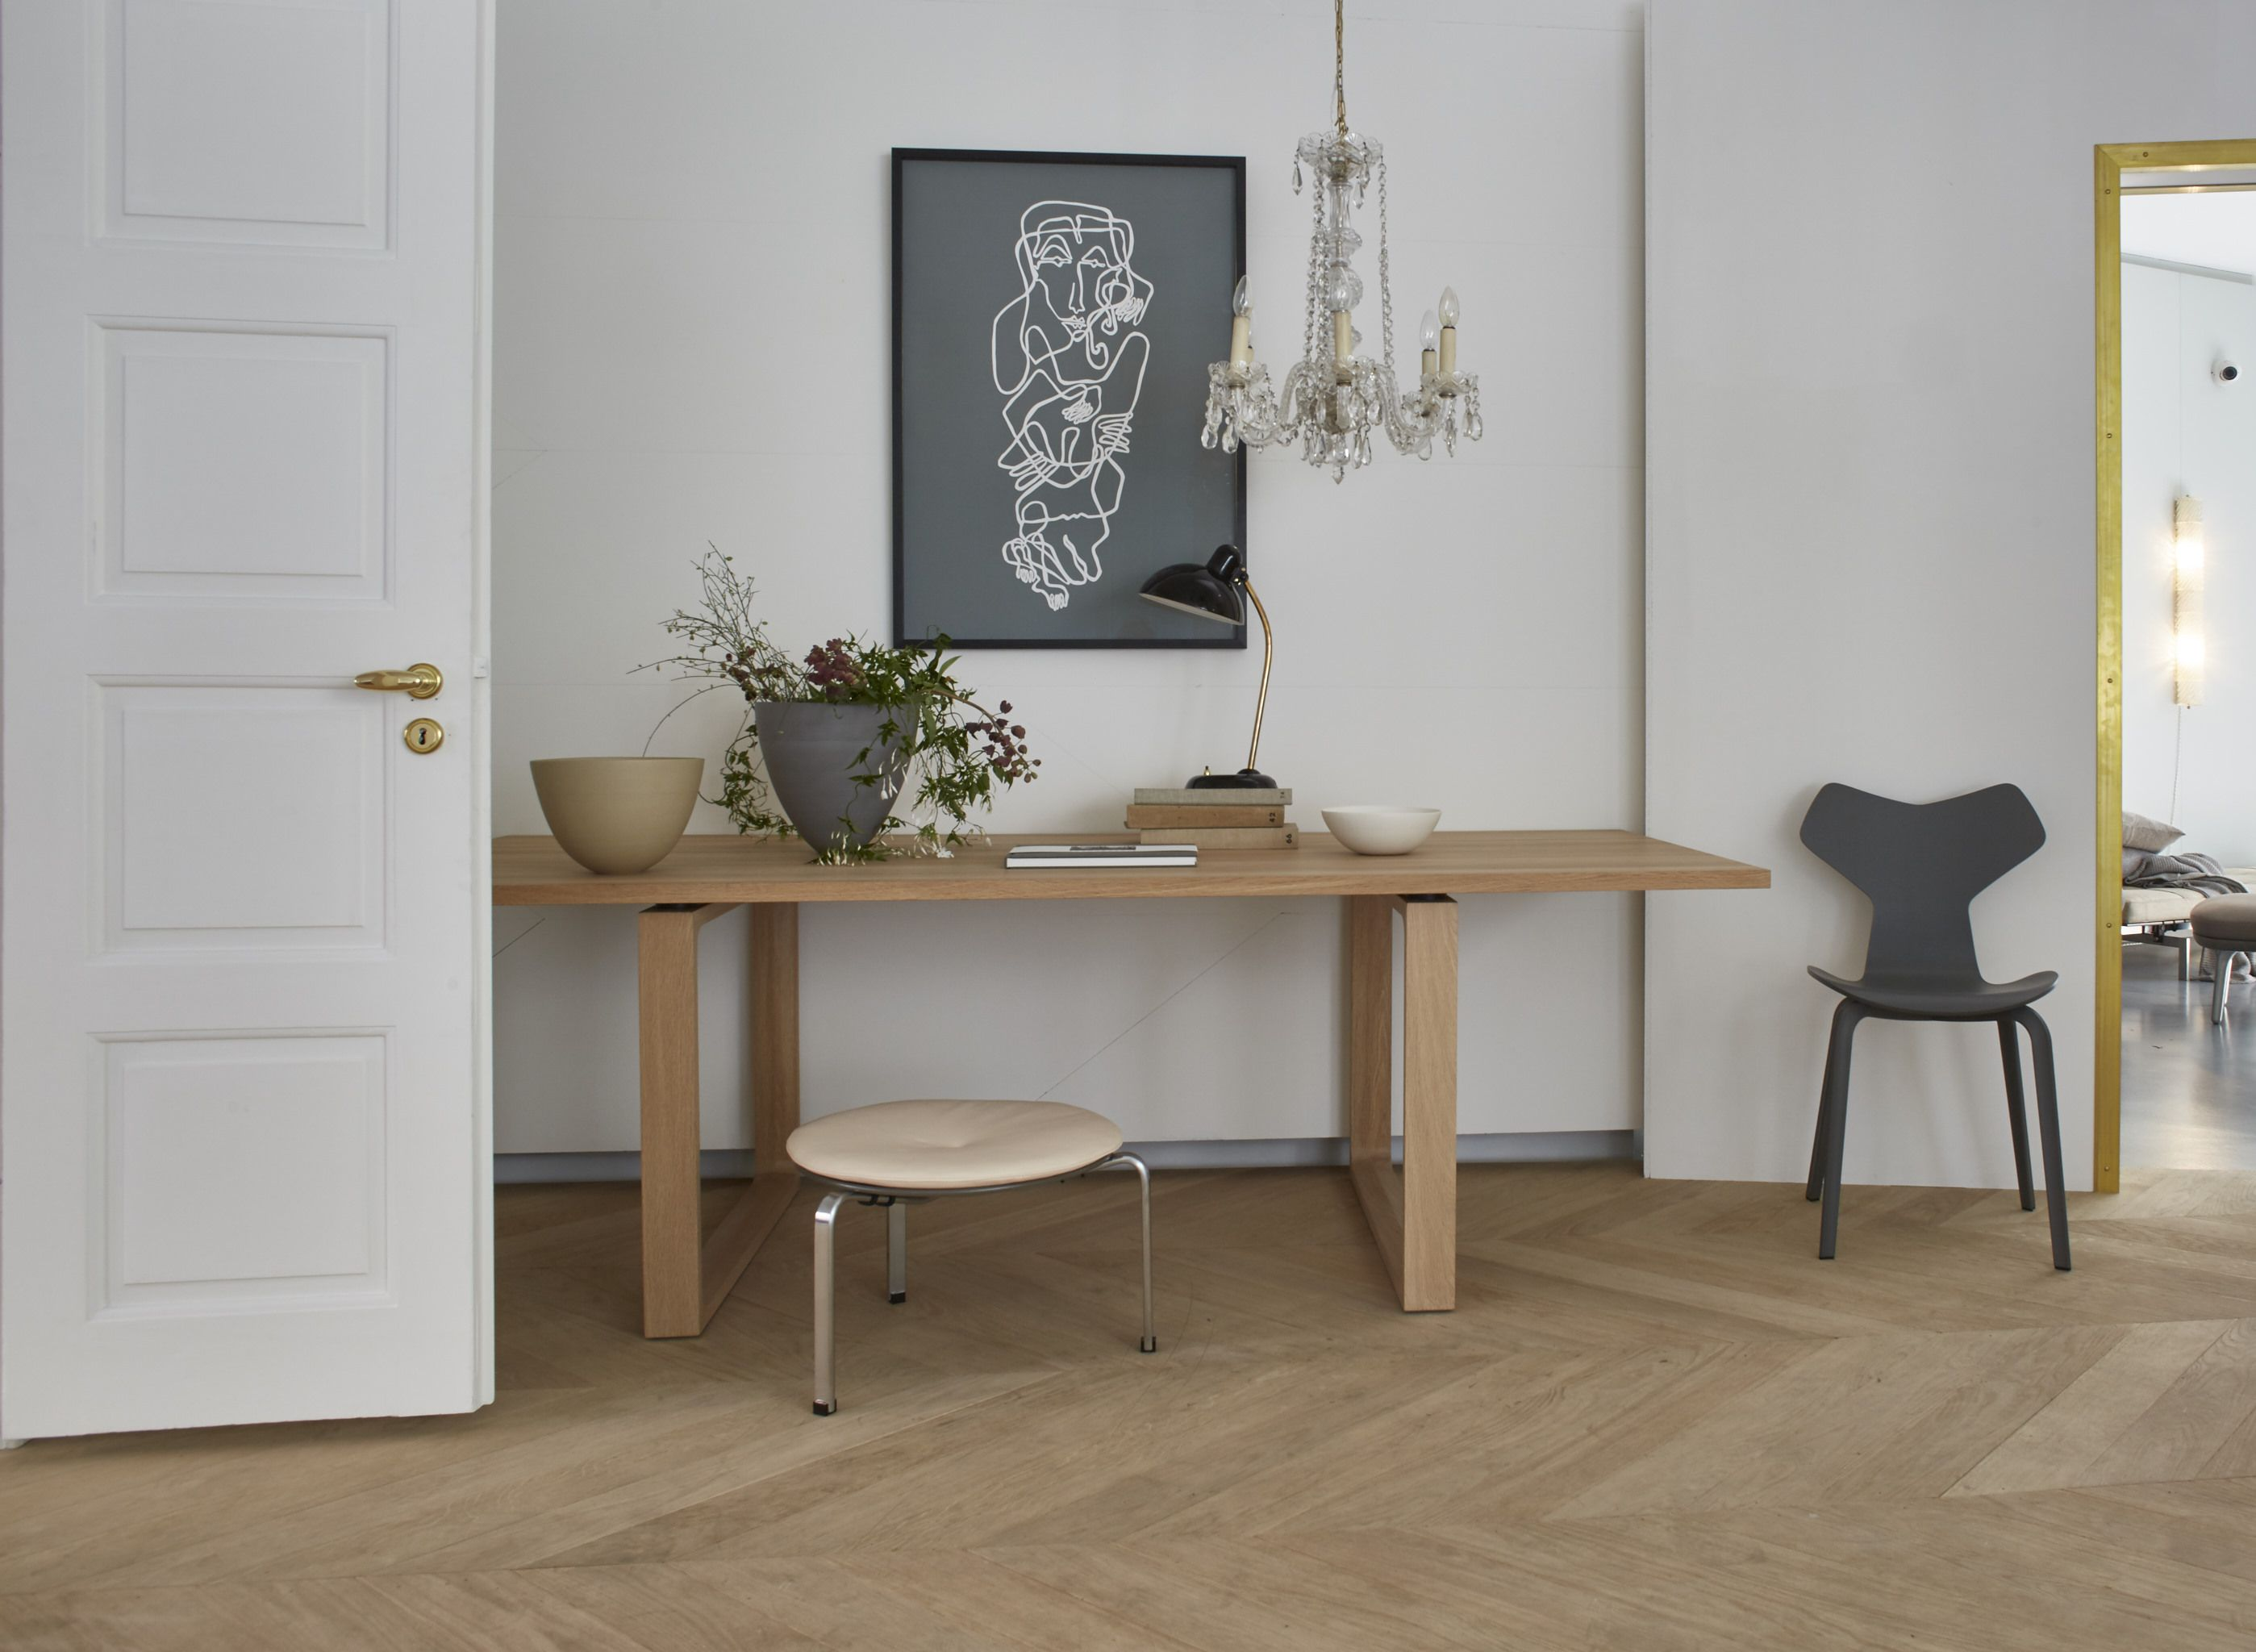 INTERIOR DESIGN The Danish furniture company Fritz Hansen is welcoming  guest to their home these days on the furniture fair Sal.